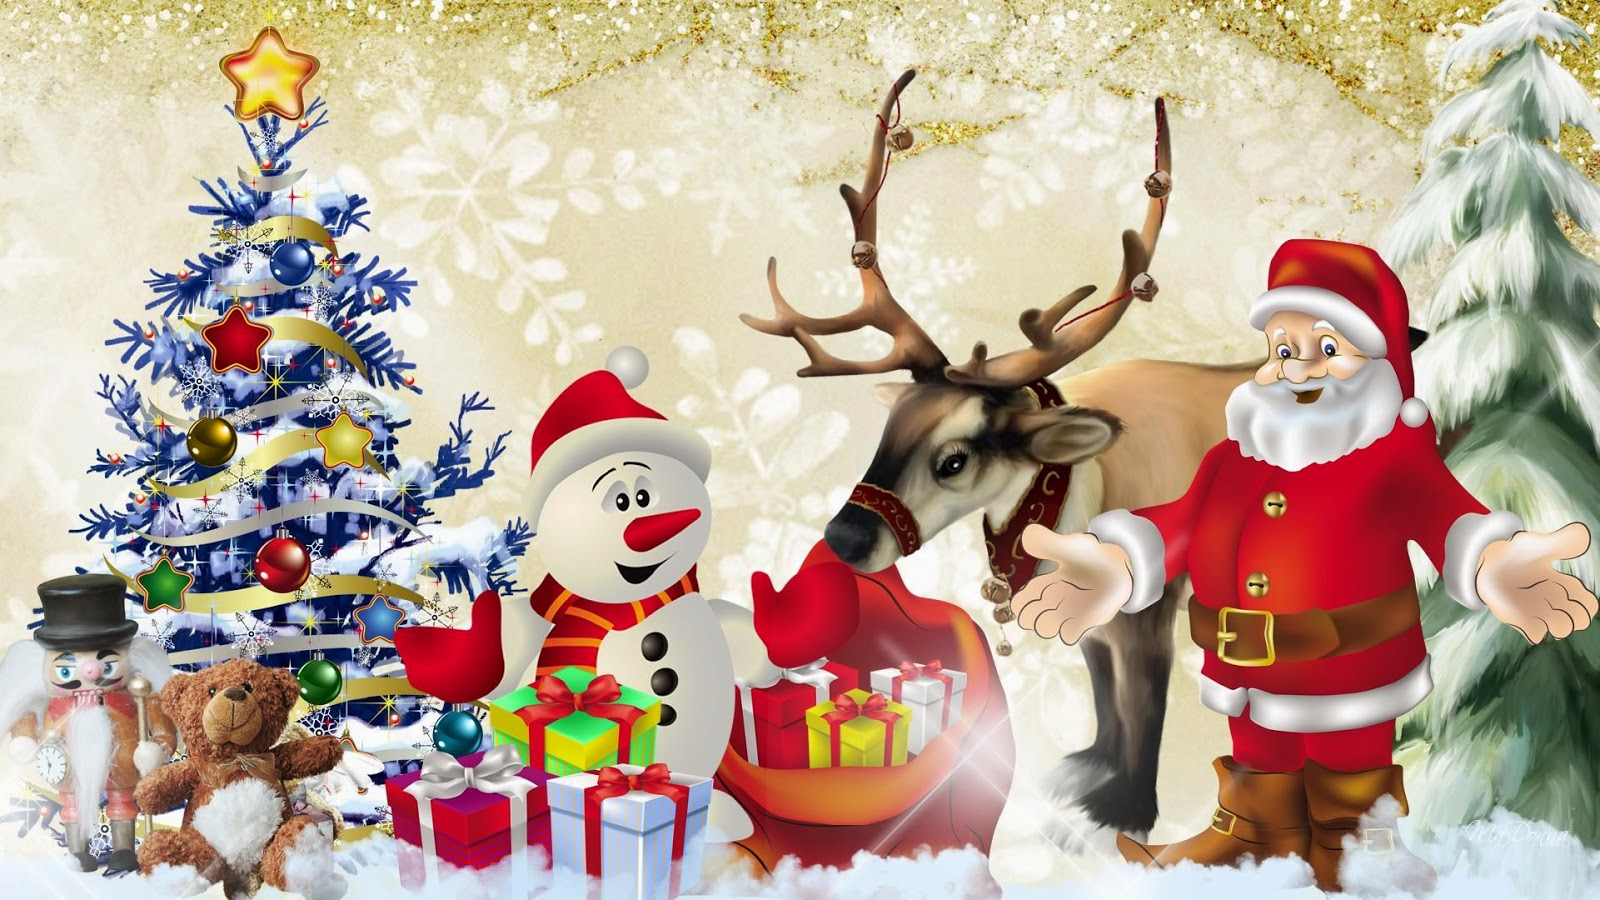 santa-friends-reindeer-snowman-xmas-tree-Christmas-cartoon-wallpaper ...